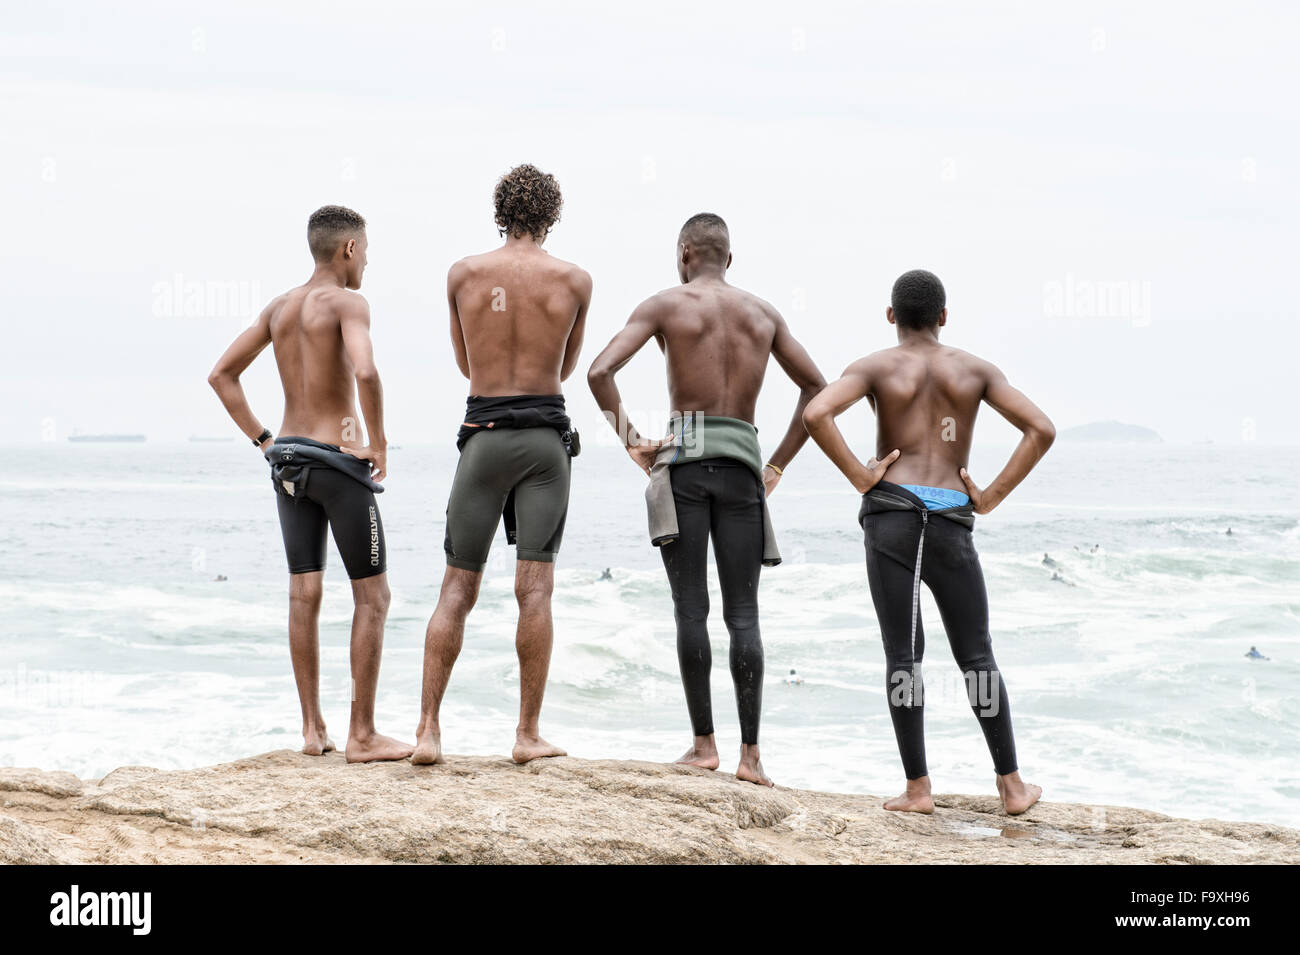 RIO DE JANEIRO, BRAZIL - OCTOBER 22, 2015: Brazilian surfers in wetsuits look at incoming waves at Praia do Diabo - Stock Image